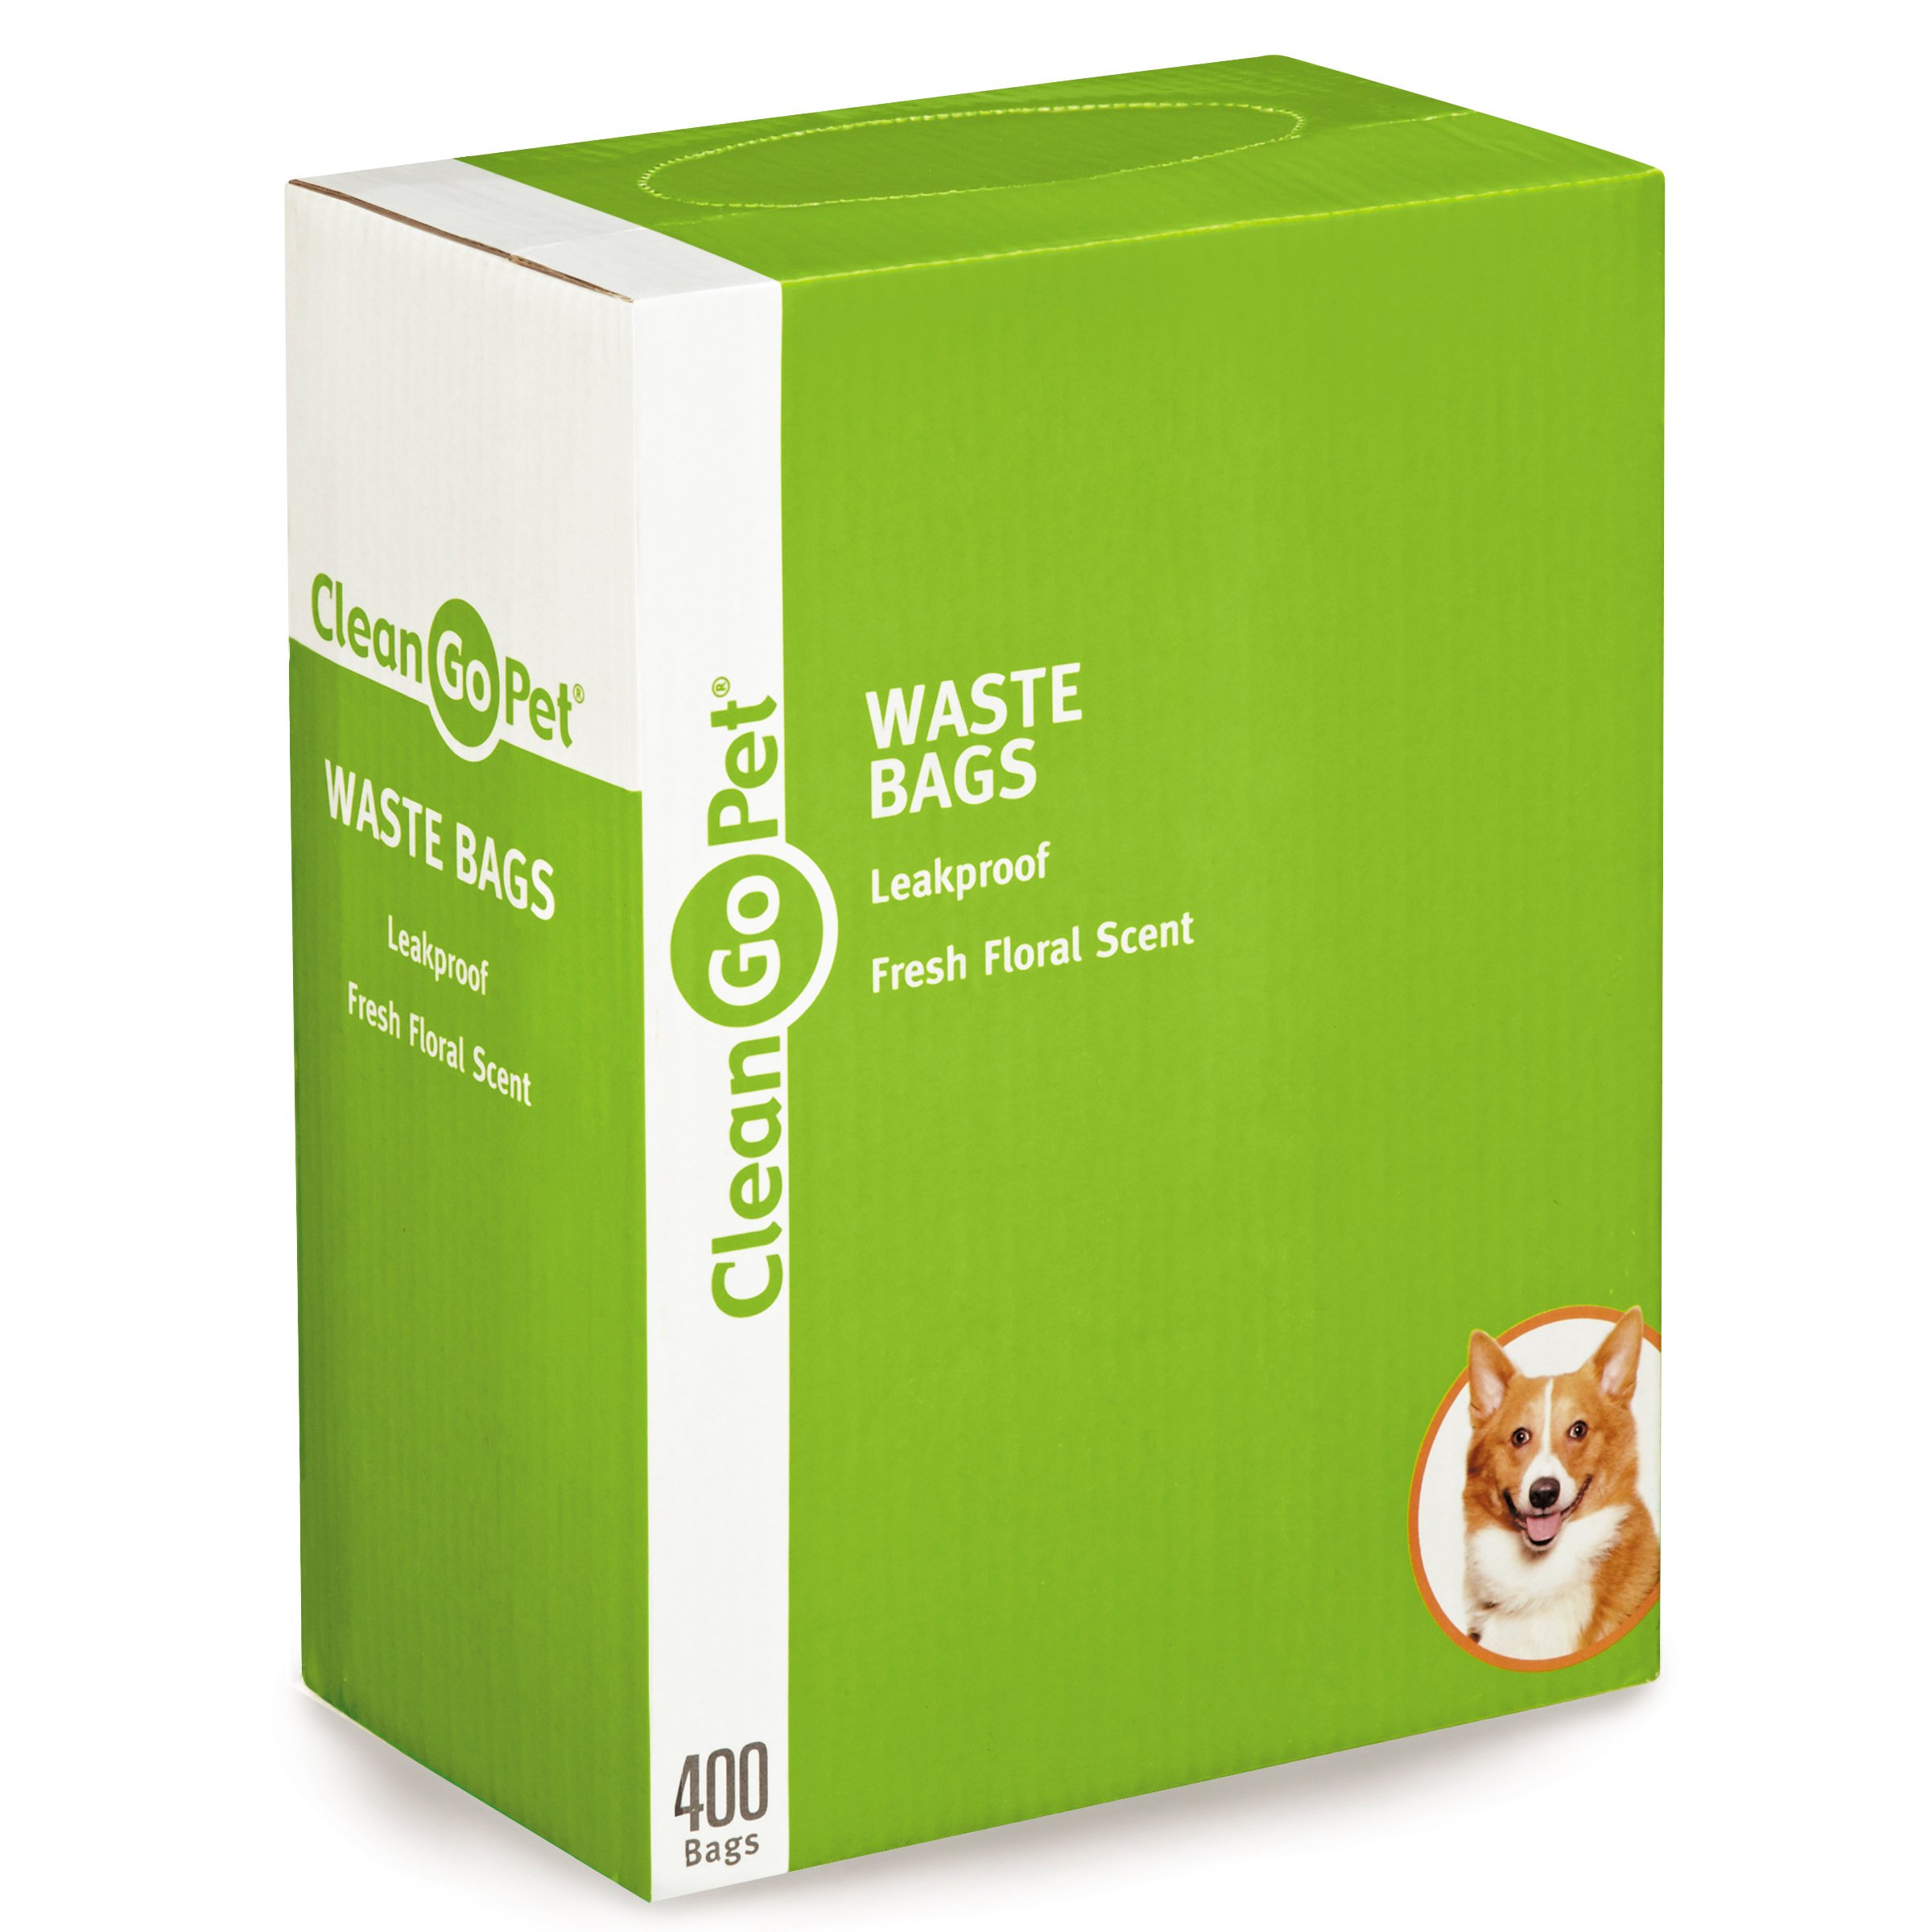 Clean Go Pet Fresh Scent Doggy Waste Bags 400-Count - Convenient, Leakproof, Plastic, Scented Poop Bags by Clean Go